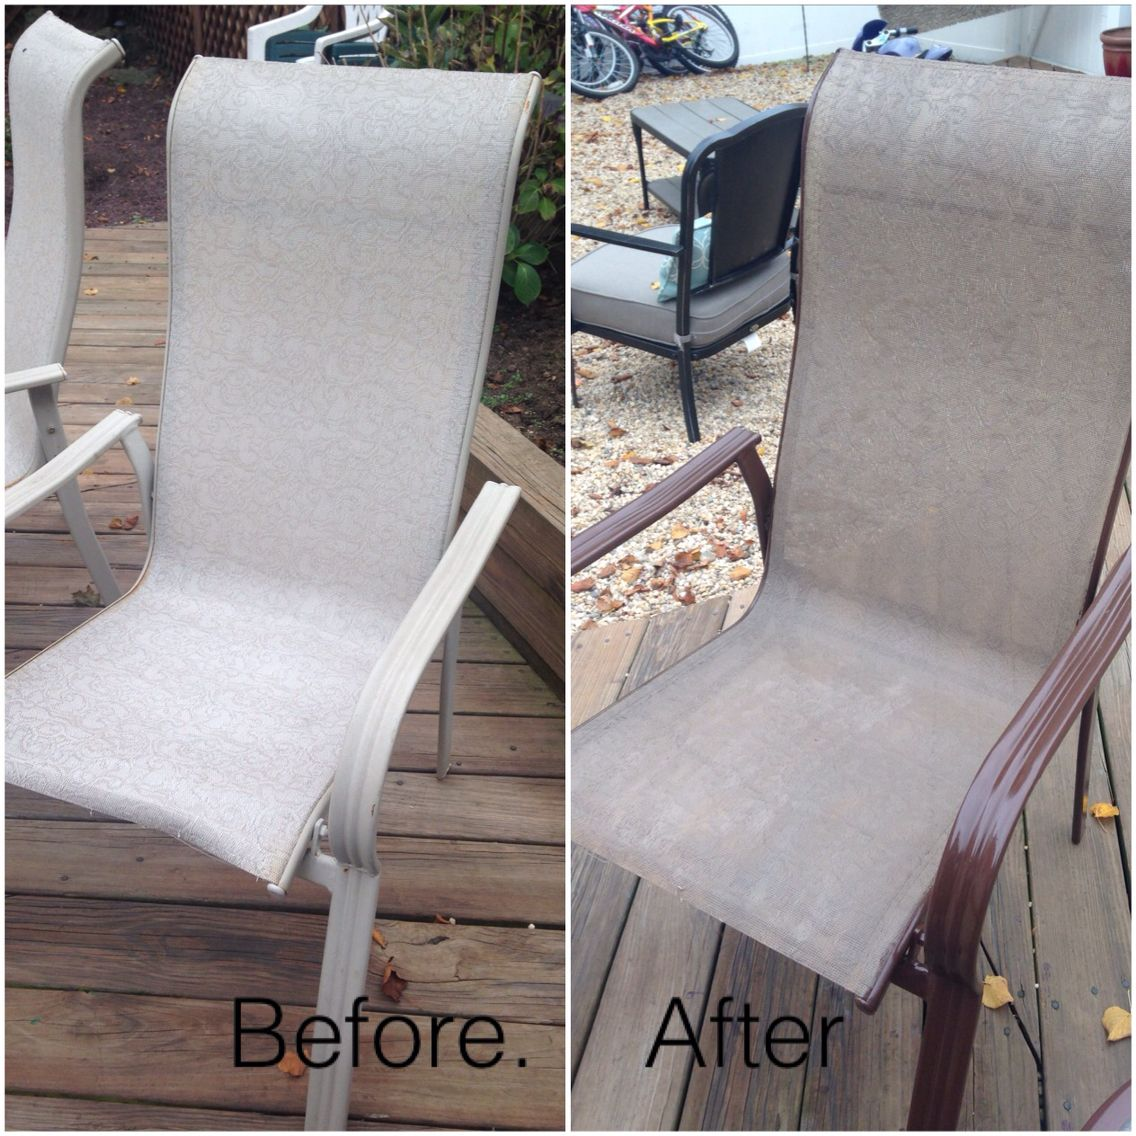 redo sling patio chairs mid century childrens table and old furniture no problem spray paint fabric